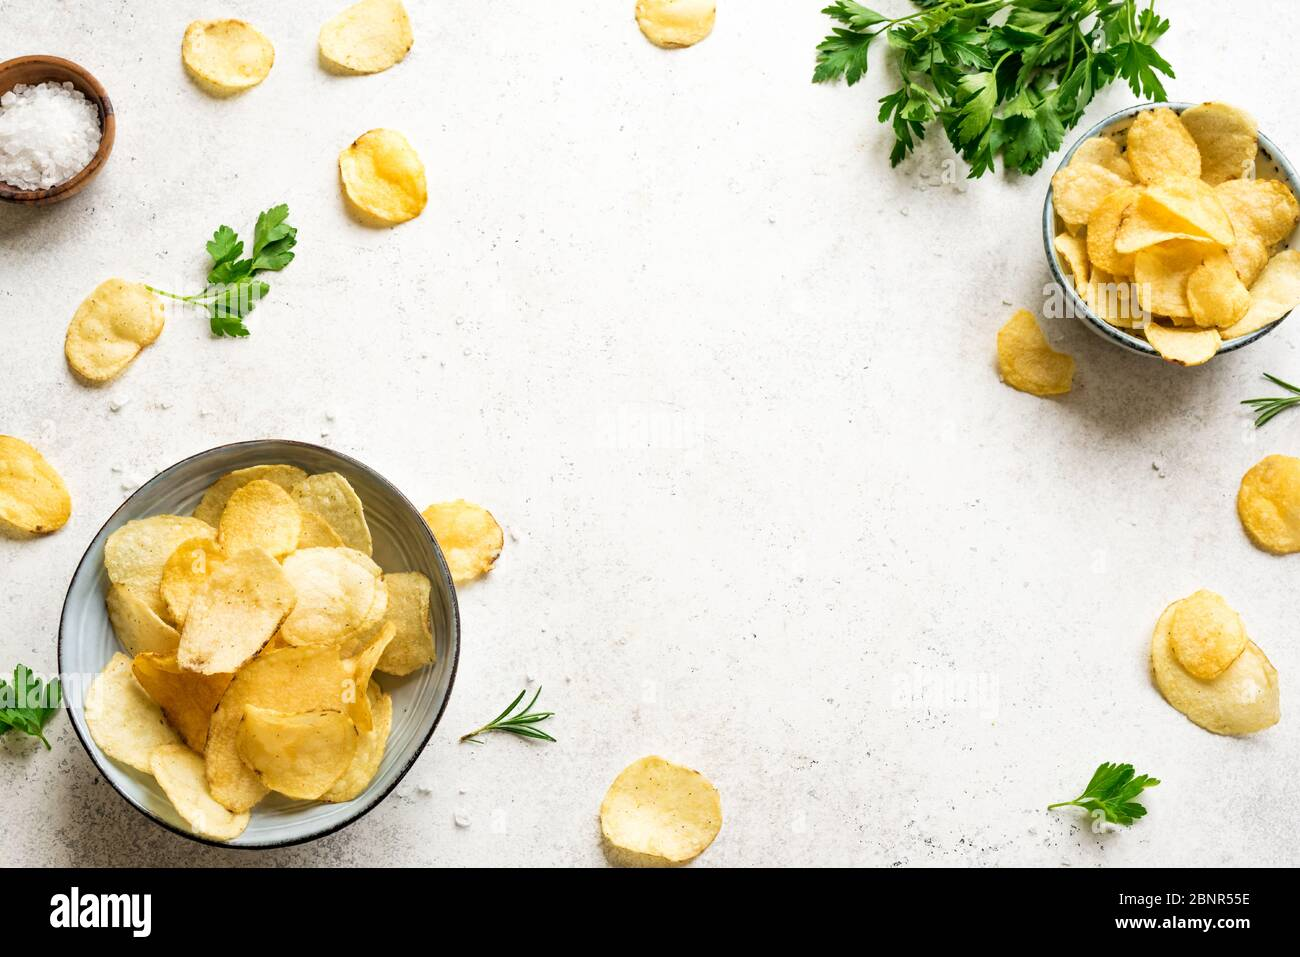 Potato chips in bowls. Homemade oven baked crispy potato chips on white background, top view, copy space. Stock Photo